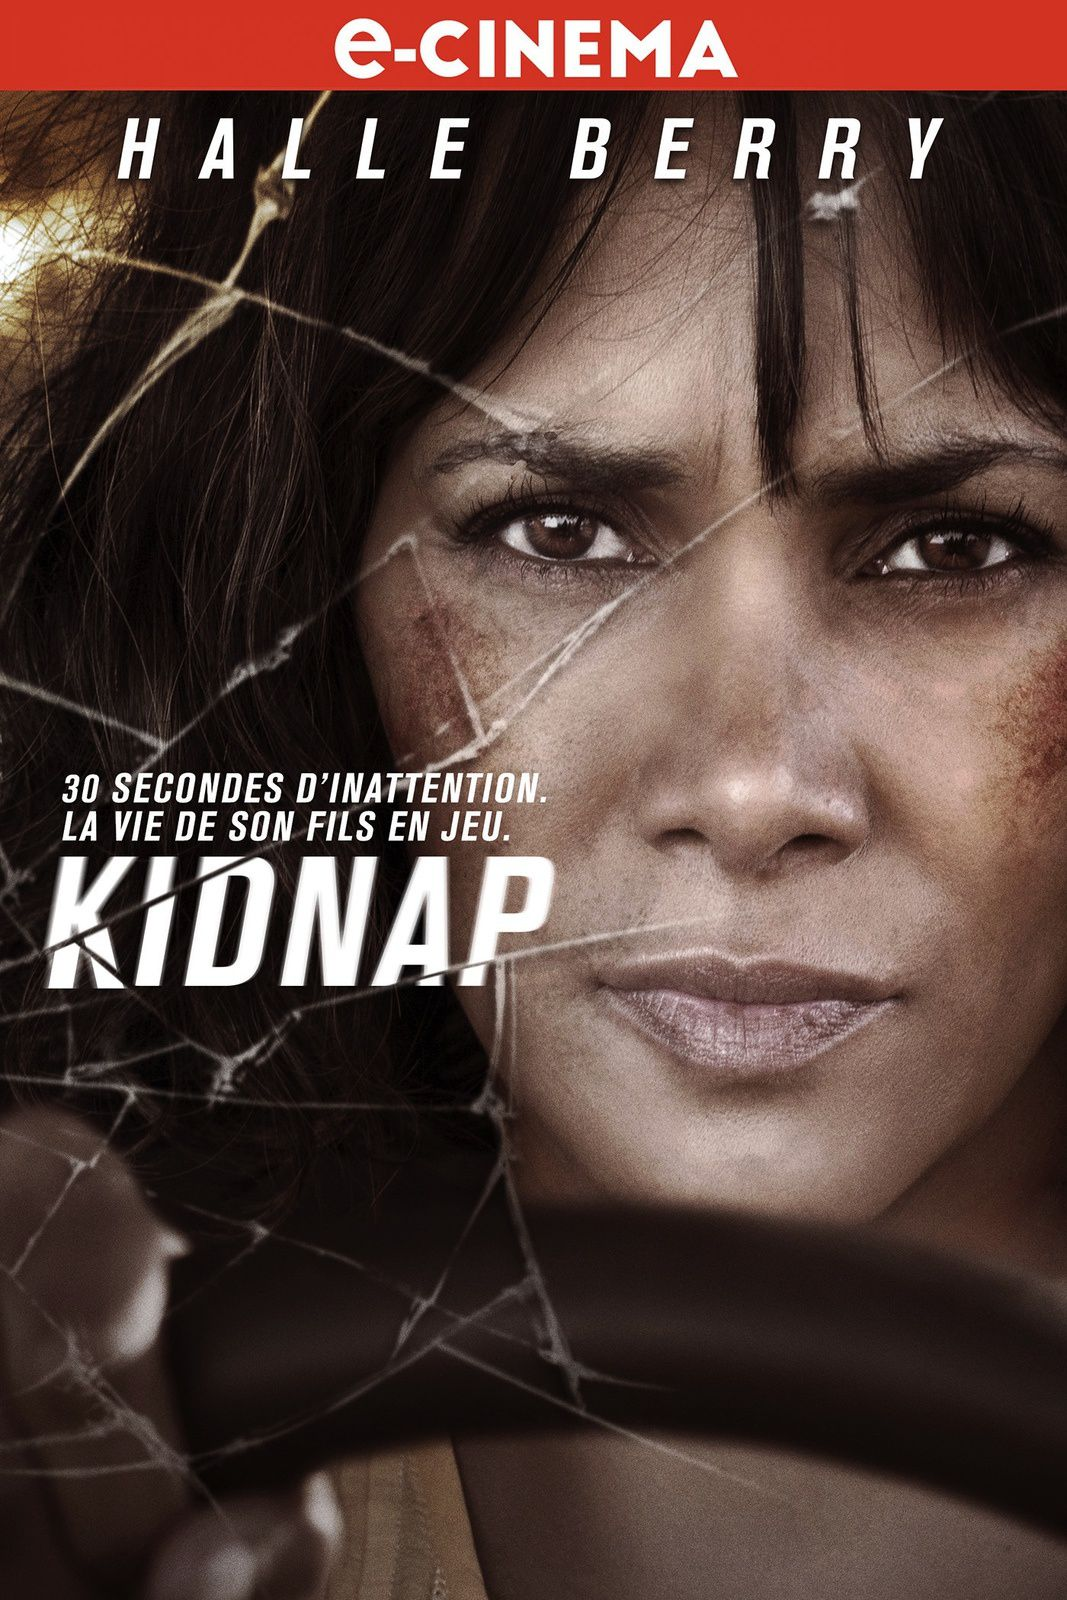 KIDNAP avec Halle Berry en e-cinema le 14 septembre 2017 chez TF1 Studio